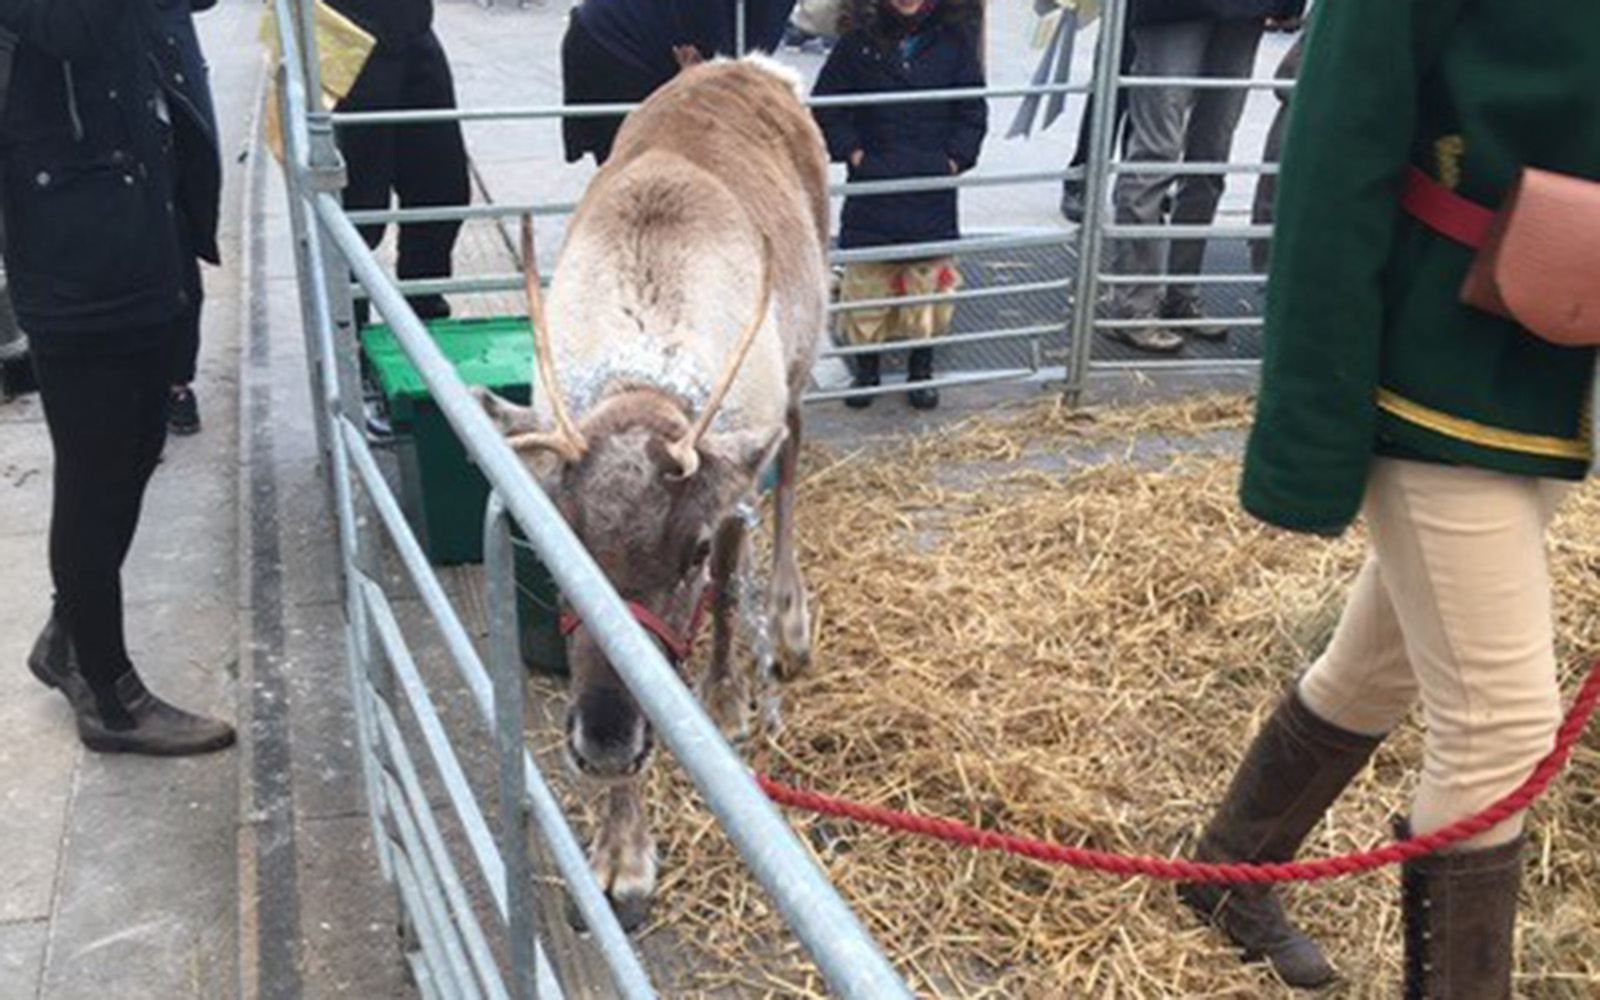 A reindeer at a small holiday fair (Brendan Mulcahey/UConn School of Business)